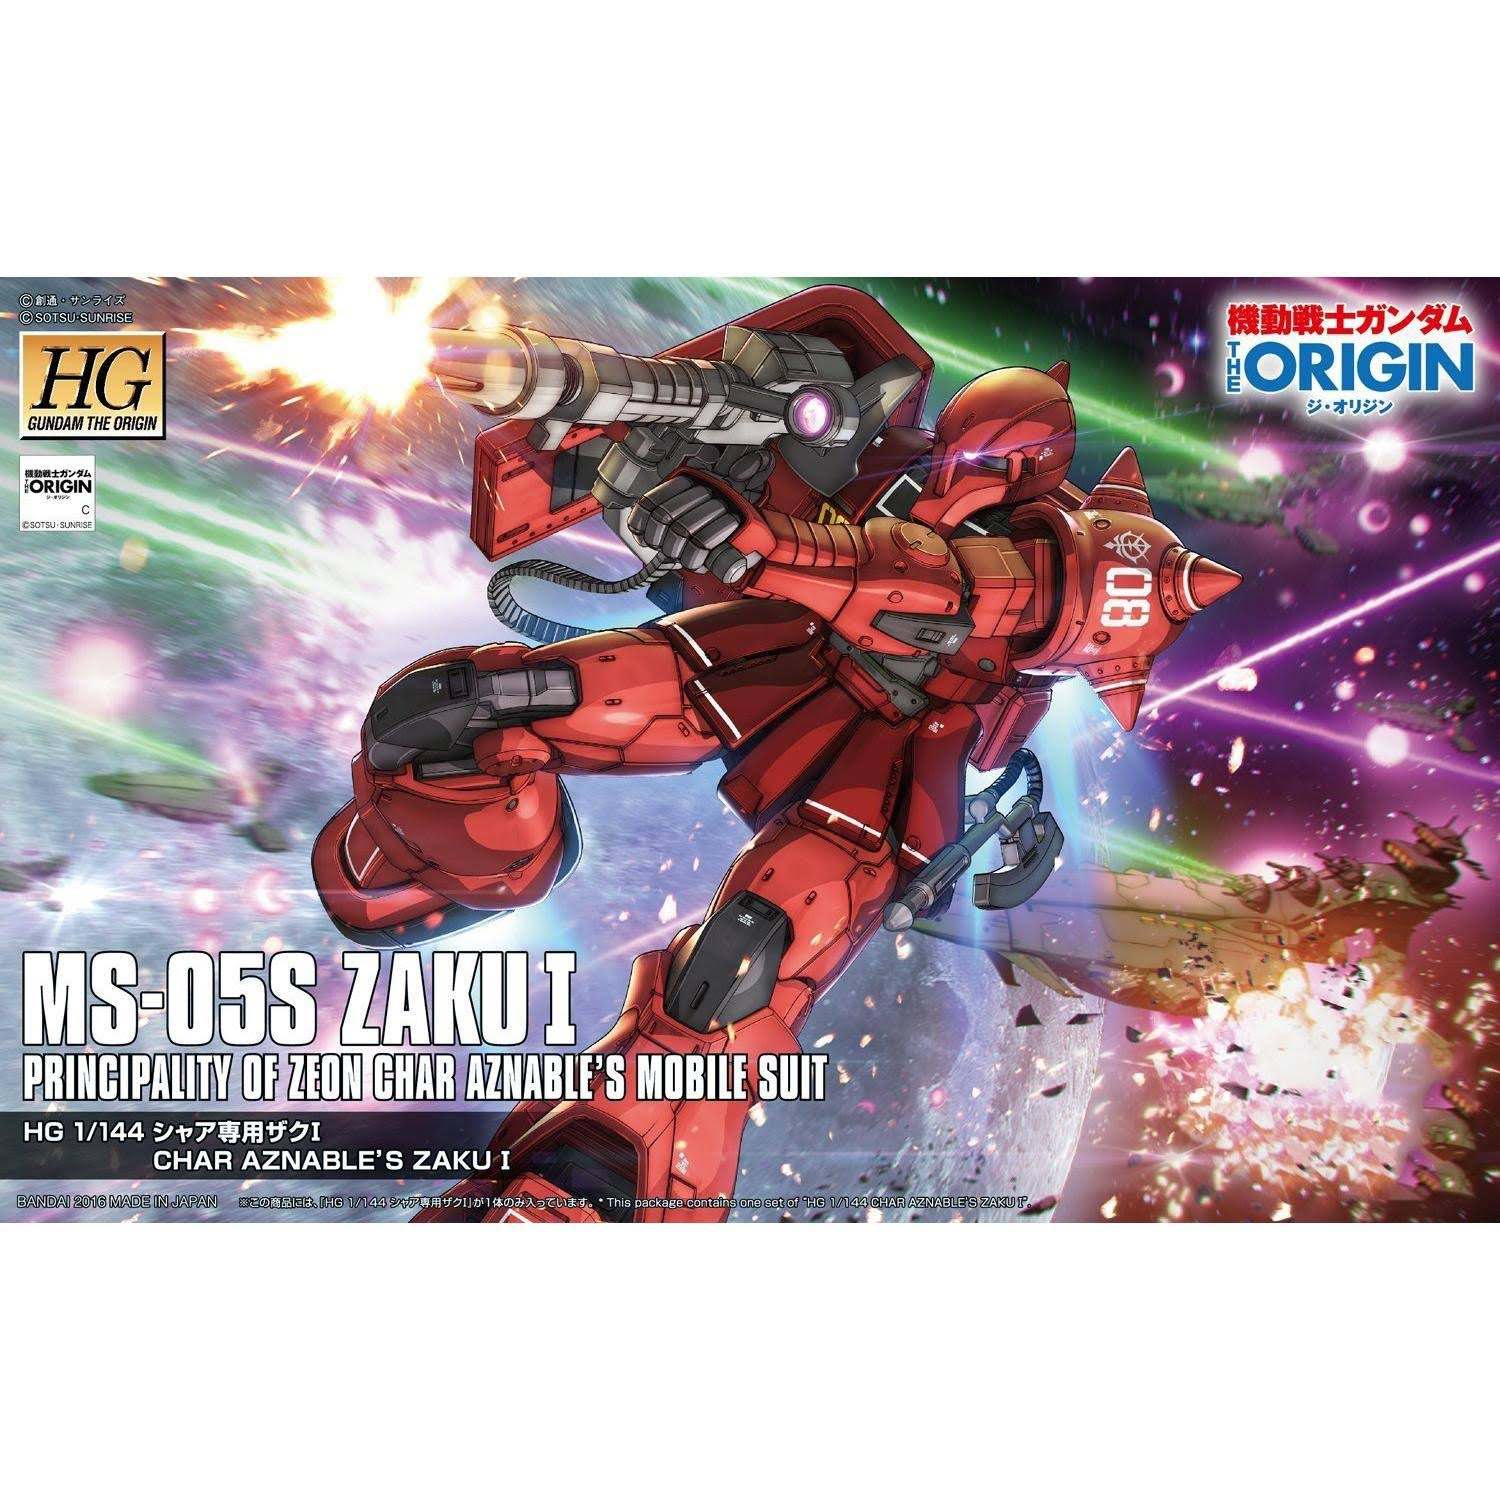 Bandai Gundam HG MS-05S Char's Zaku I Plastic Model Kit - 1/144 Scale